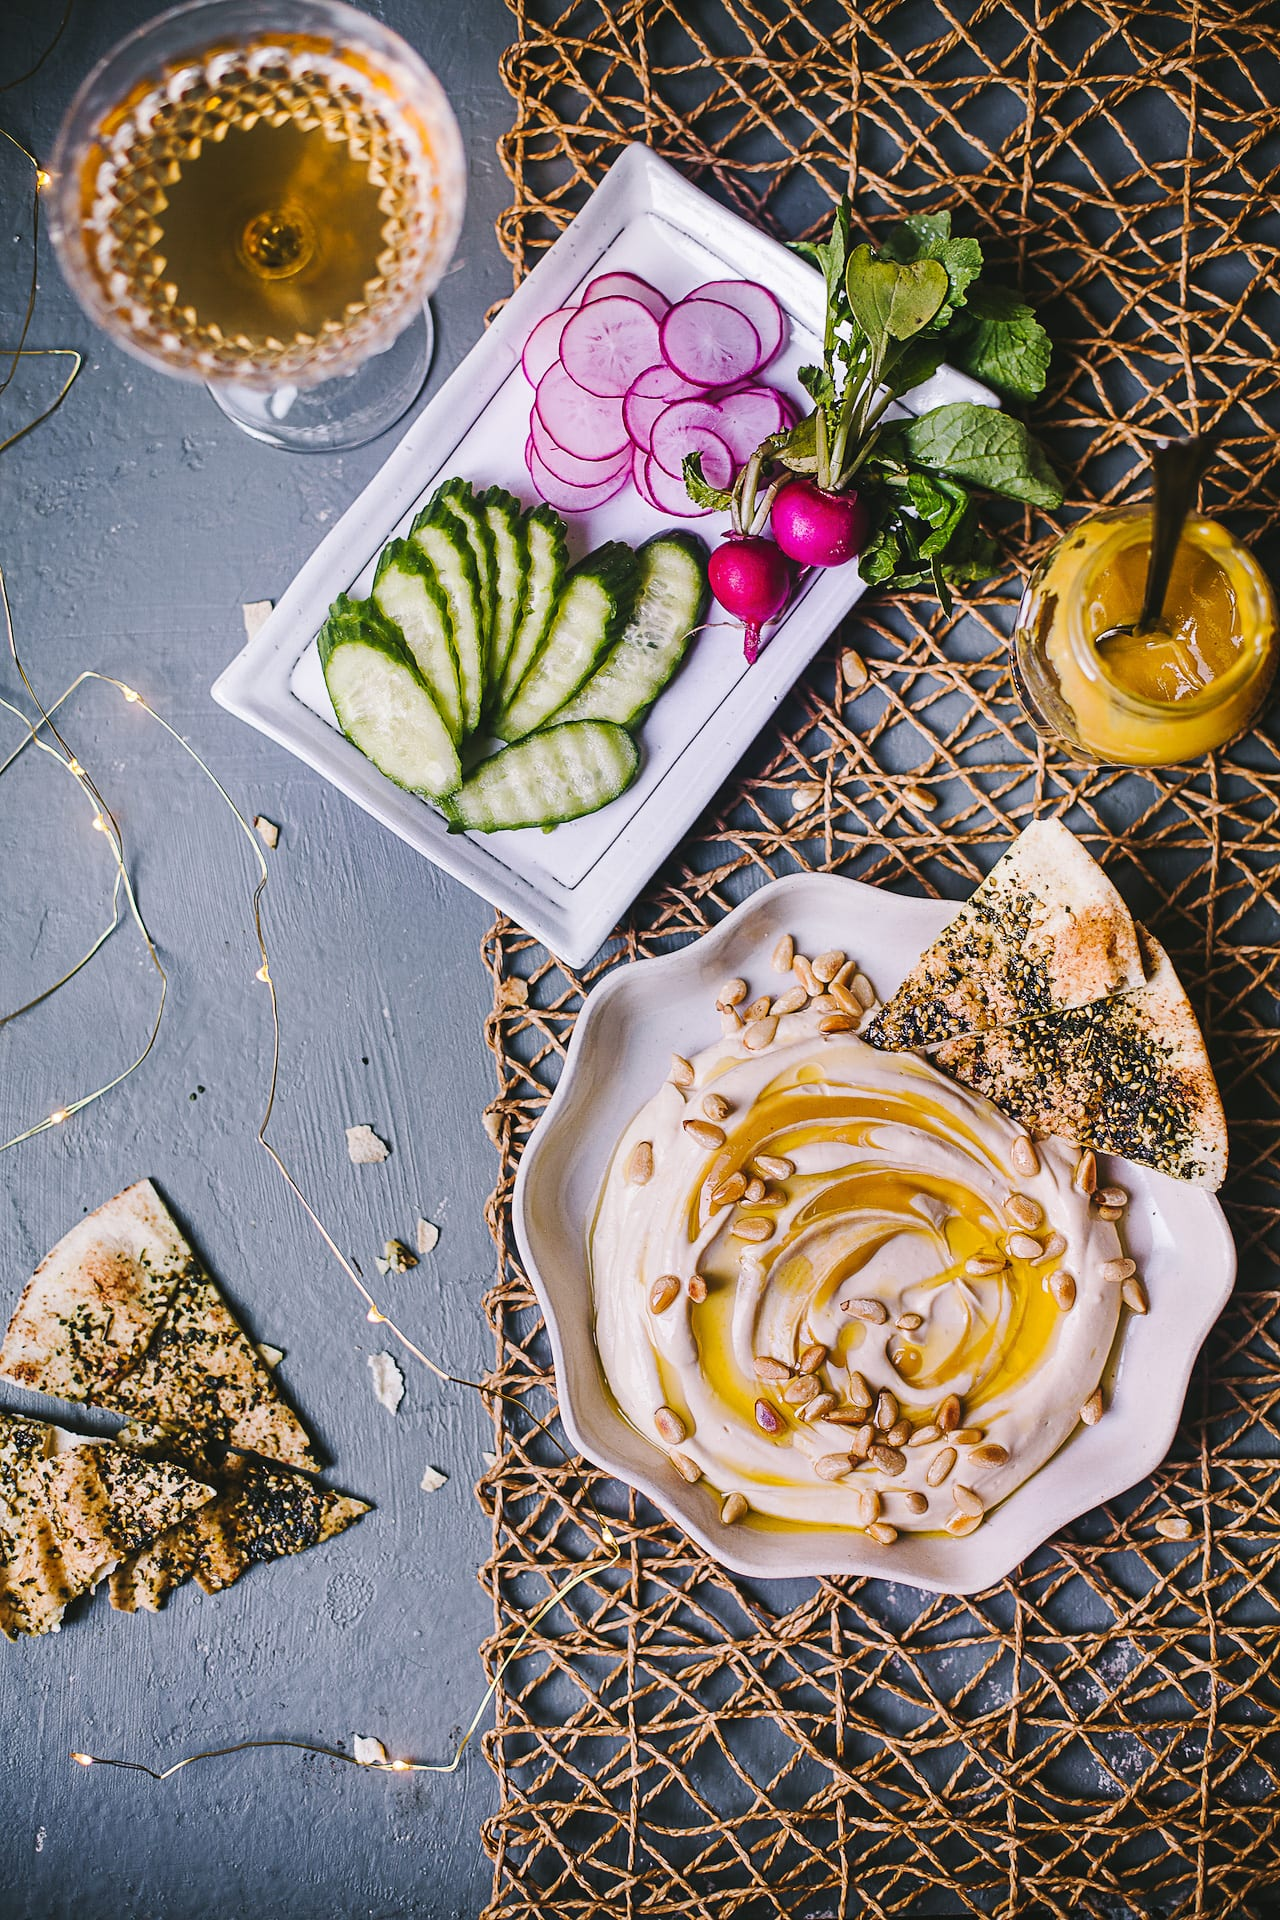 Honey Dijon Hummus with Zaatar Pita Chips | Playful Cooking #hummus #foodphotography #honey #dijon #zaatar #pitachips